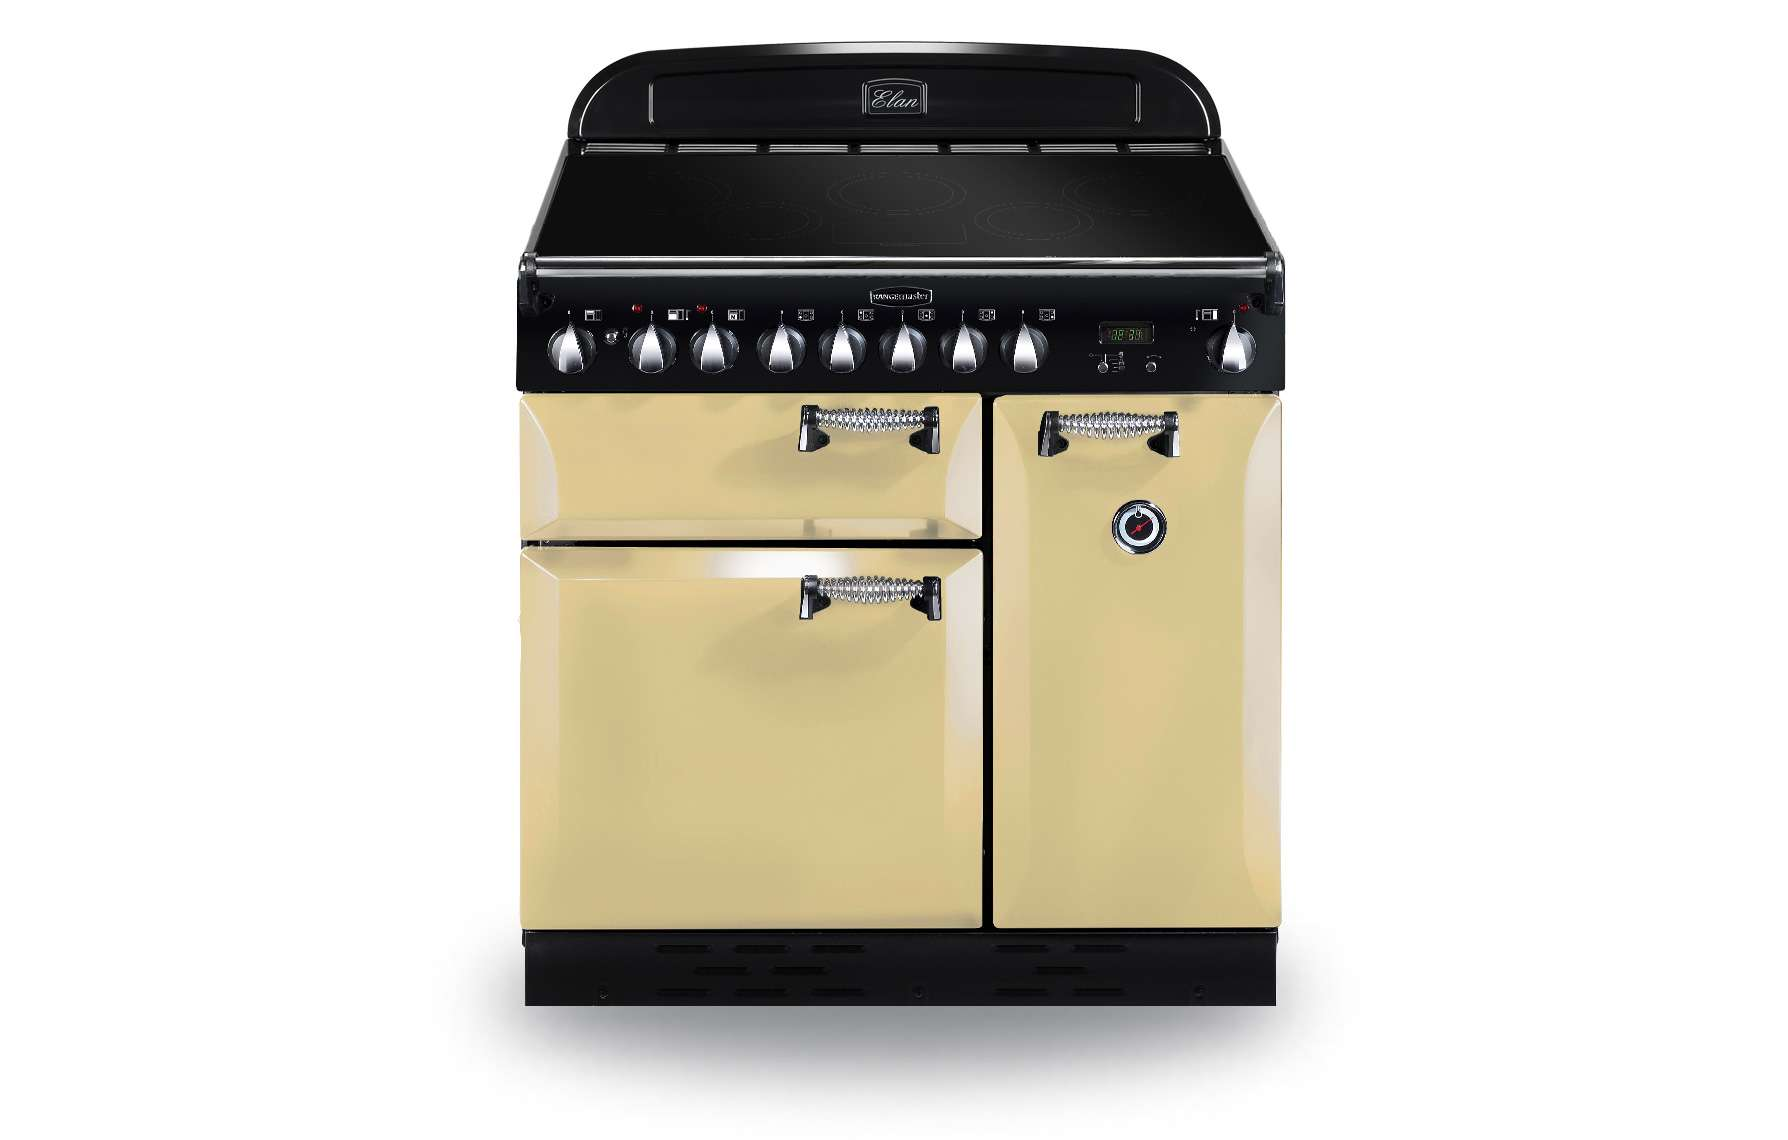 Rangemaster Elan Induction Range Cookers Rangecookers